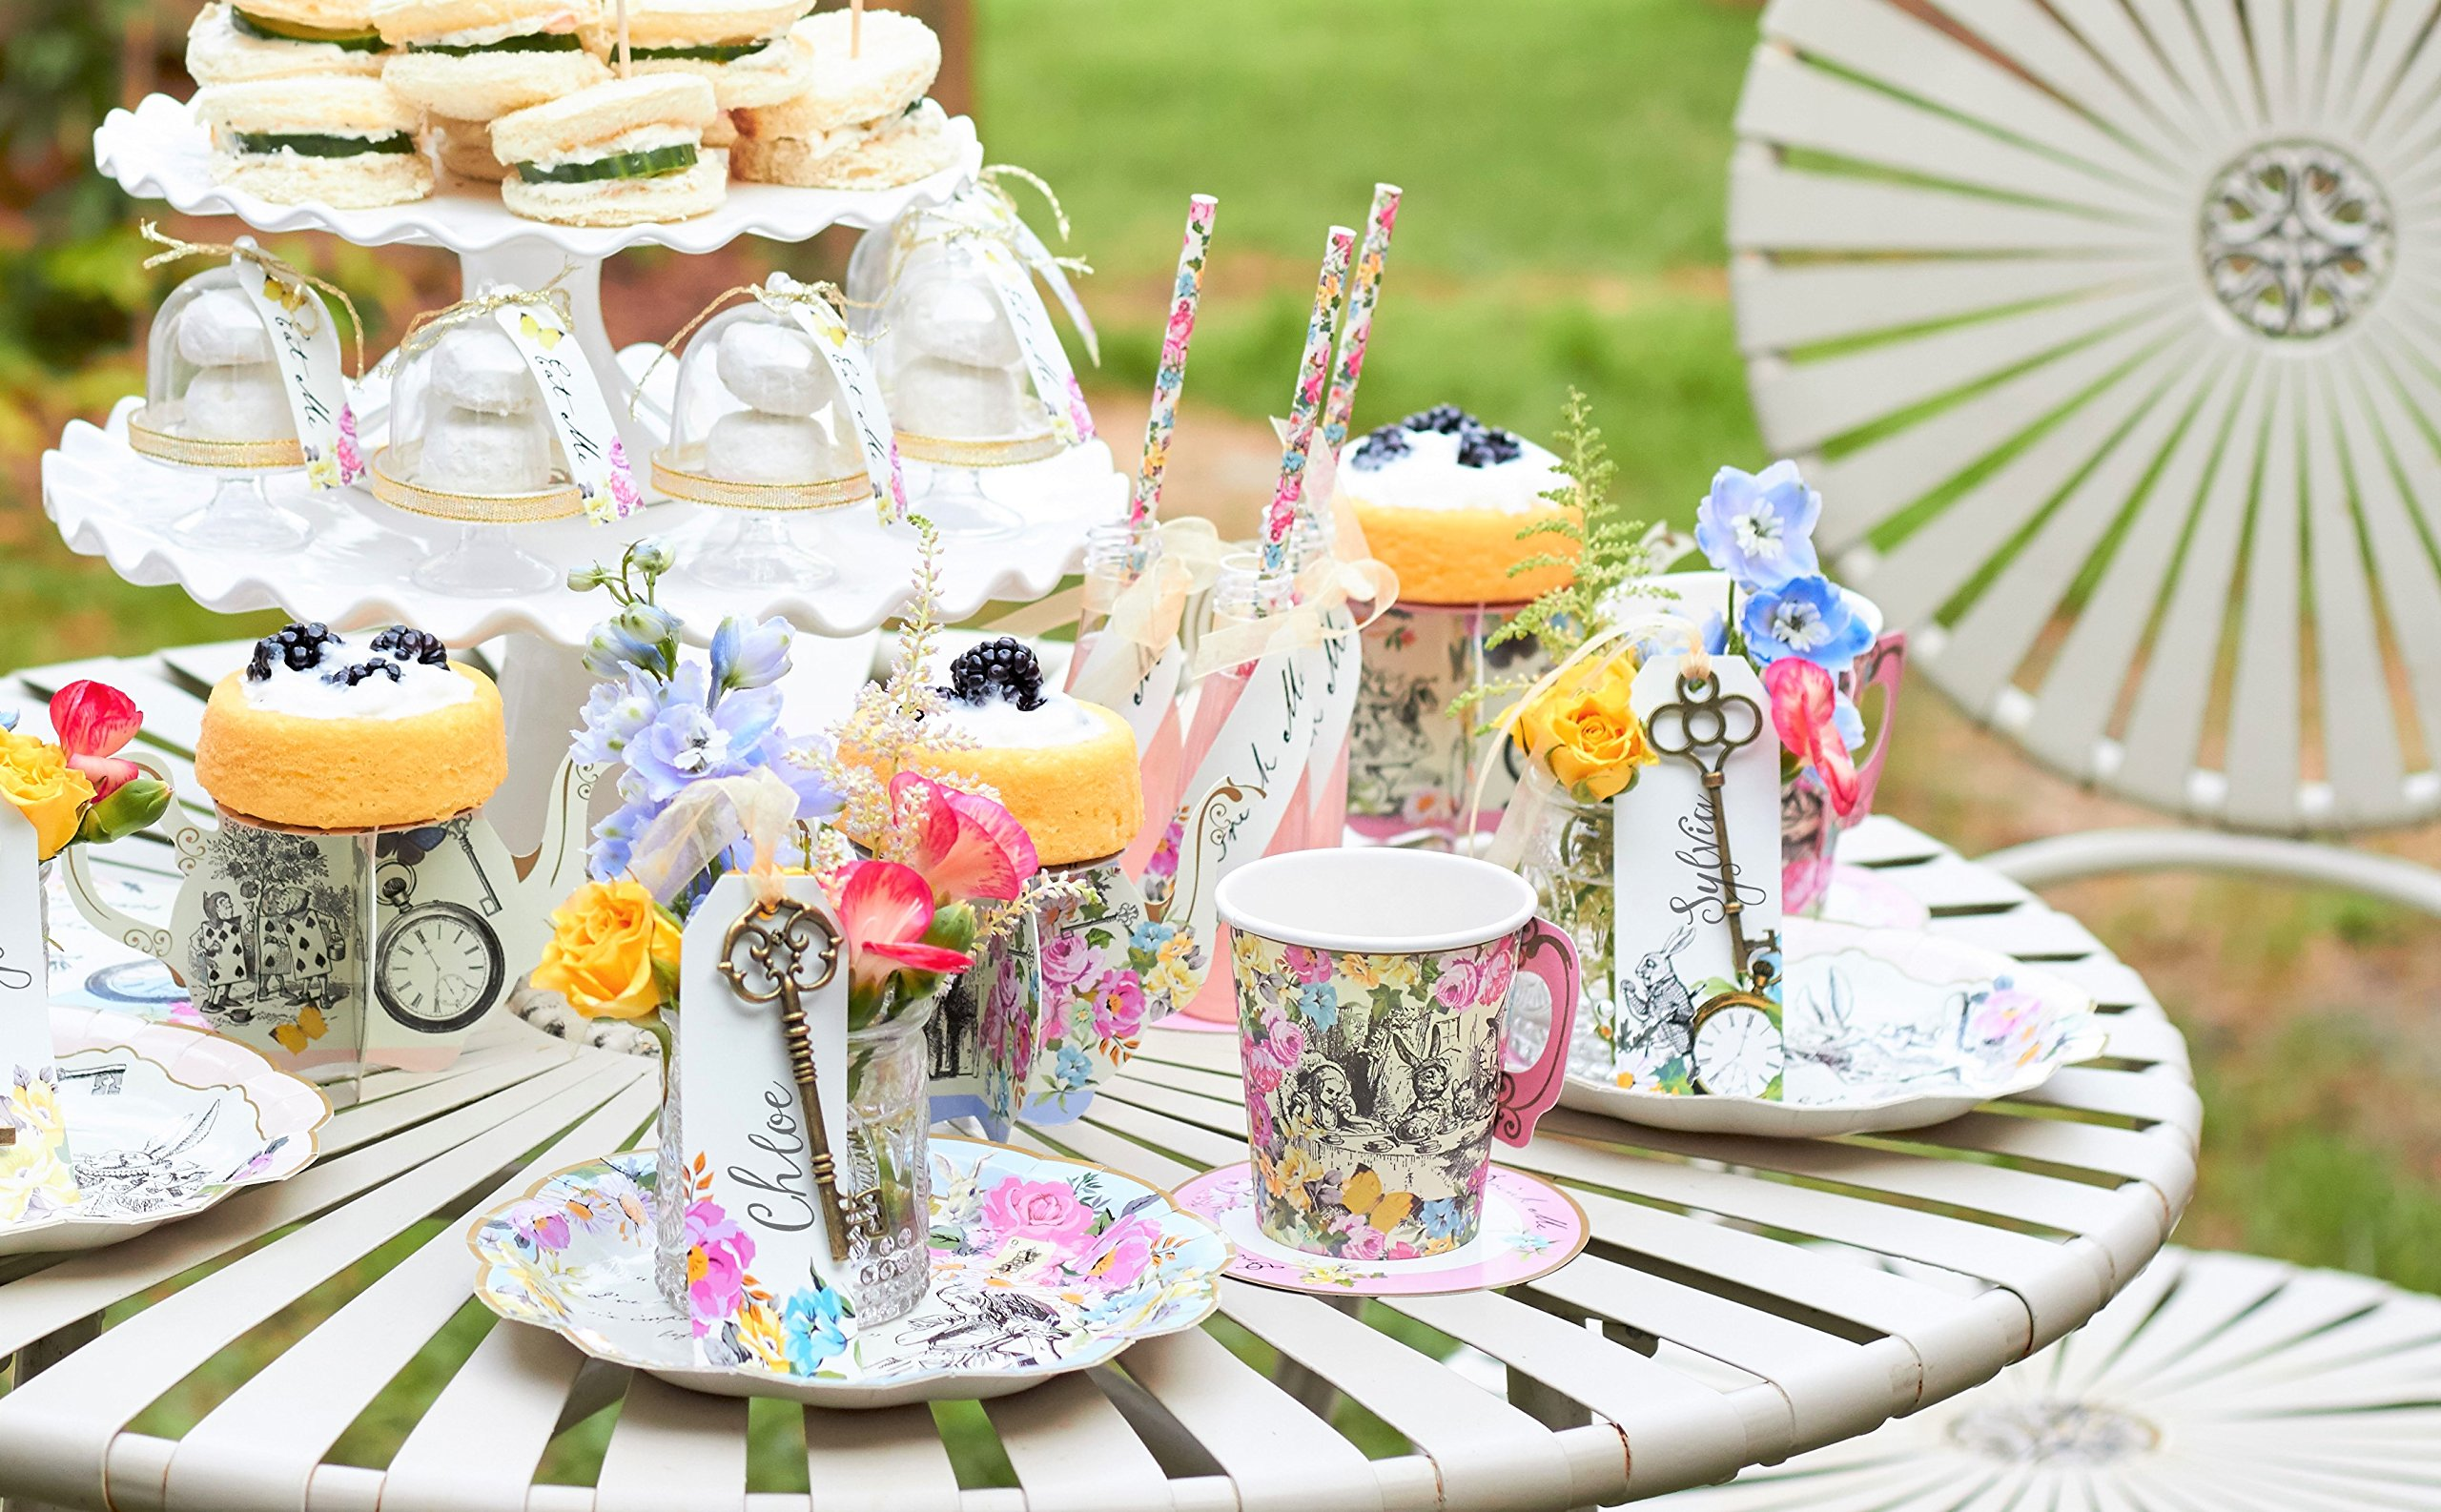 Talking Tables Truly Alice Drink Set Table Décor for a Tea Party, Multicolor (6 Pack) by Talking Tables